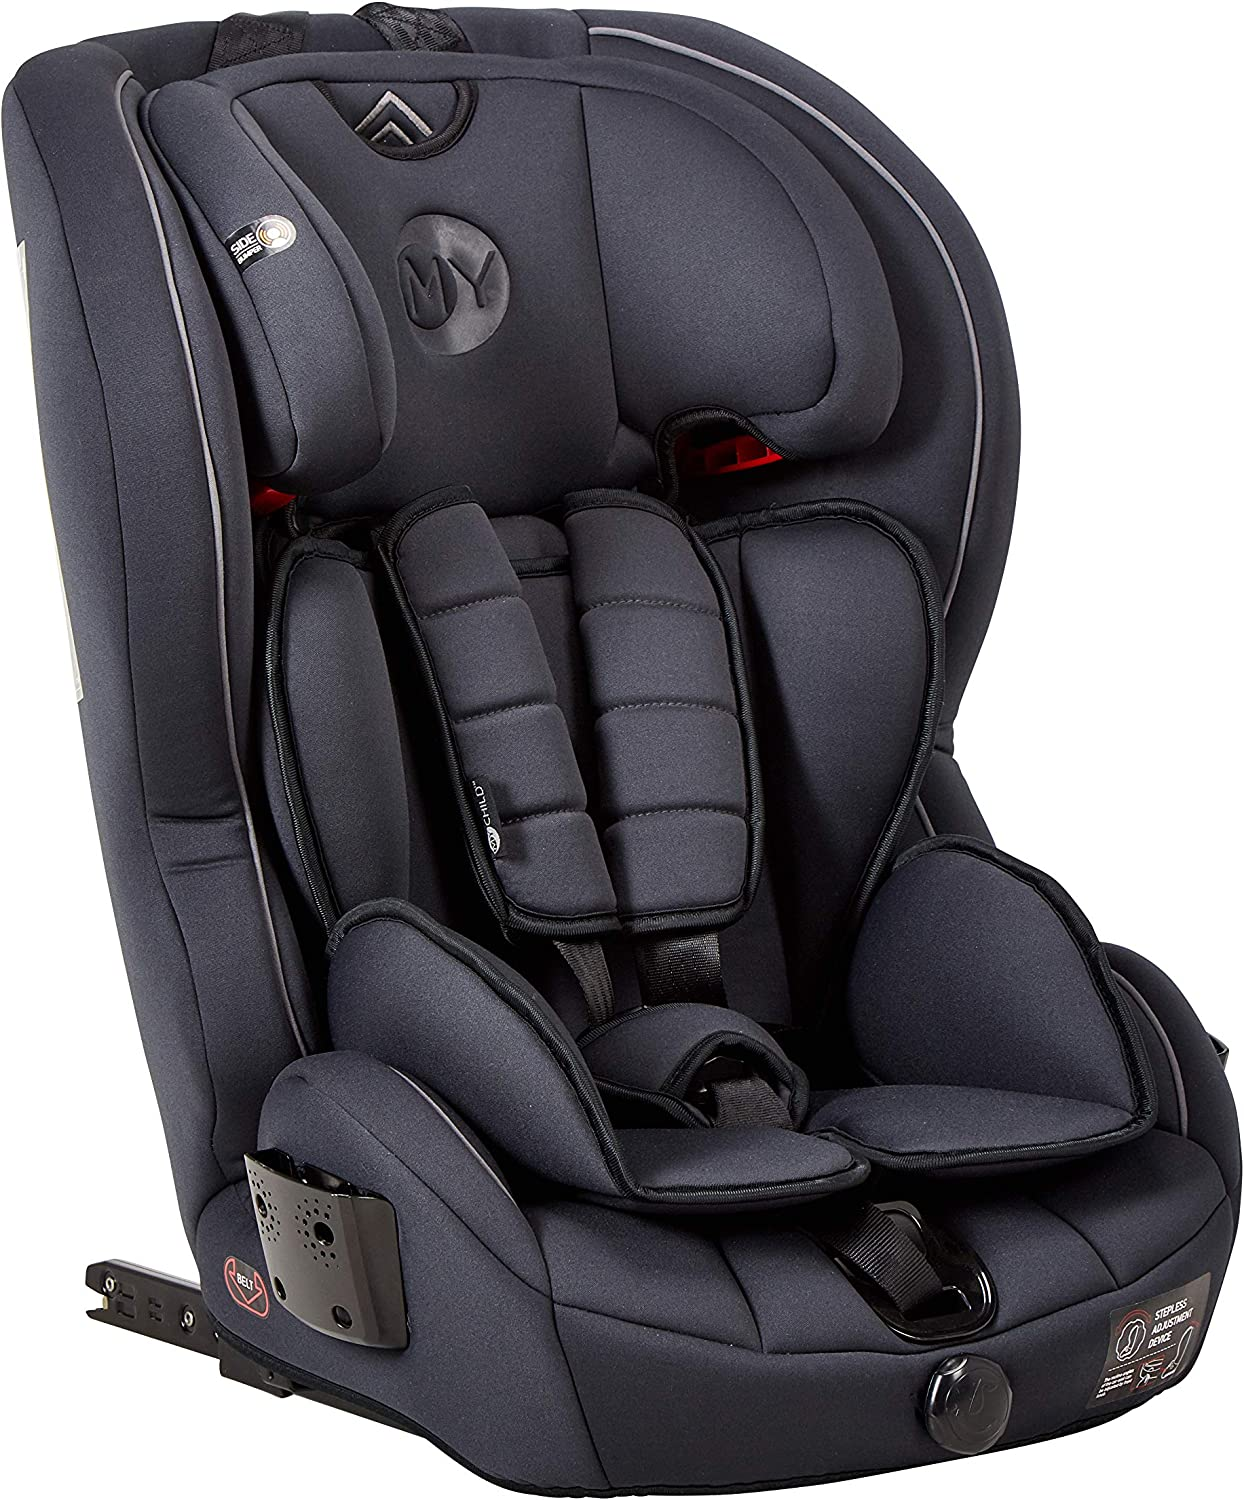 Mychild Stirling Group 123 ISOFIX Car